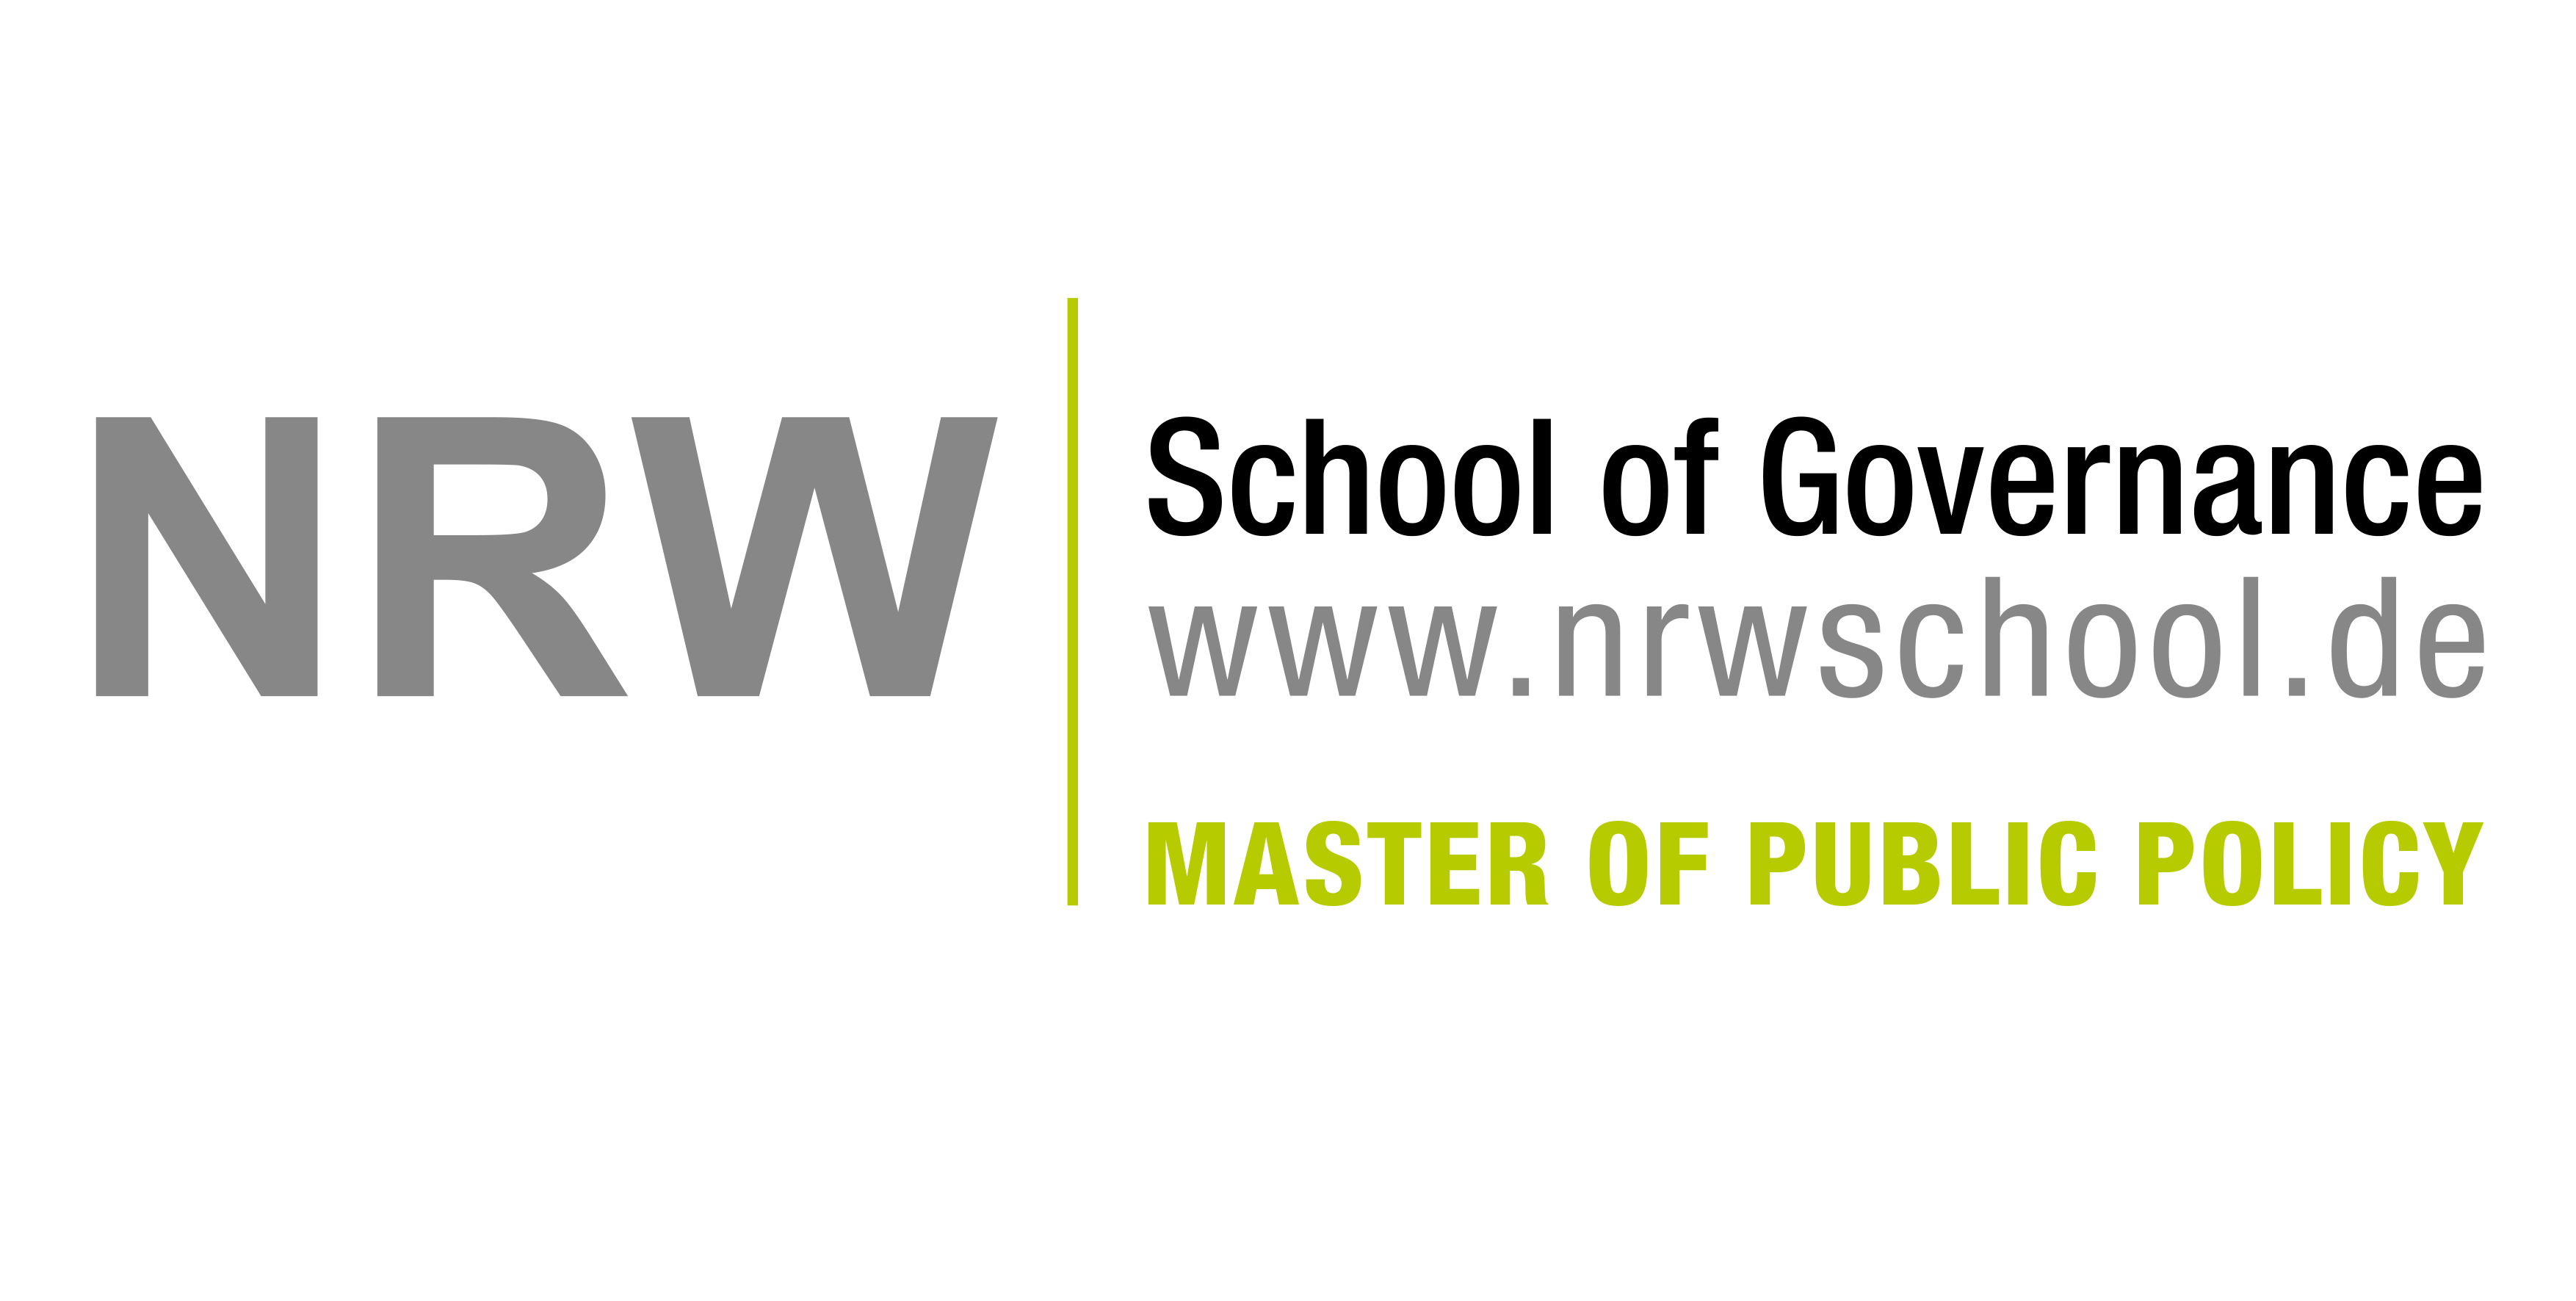 Master of Public Policy (MPP) › NRW School of Governance